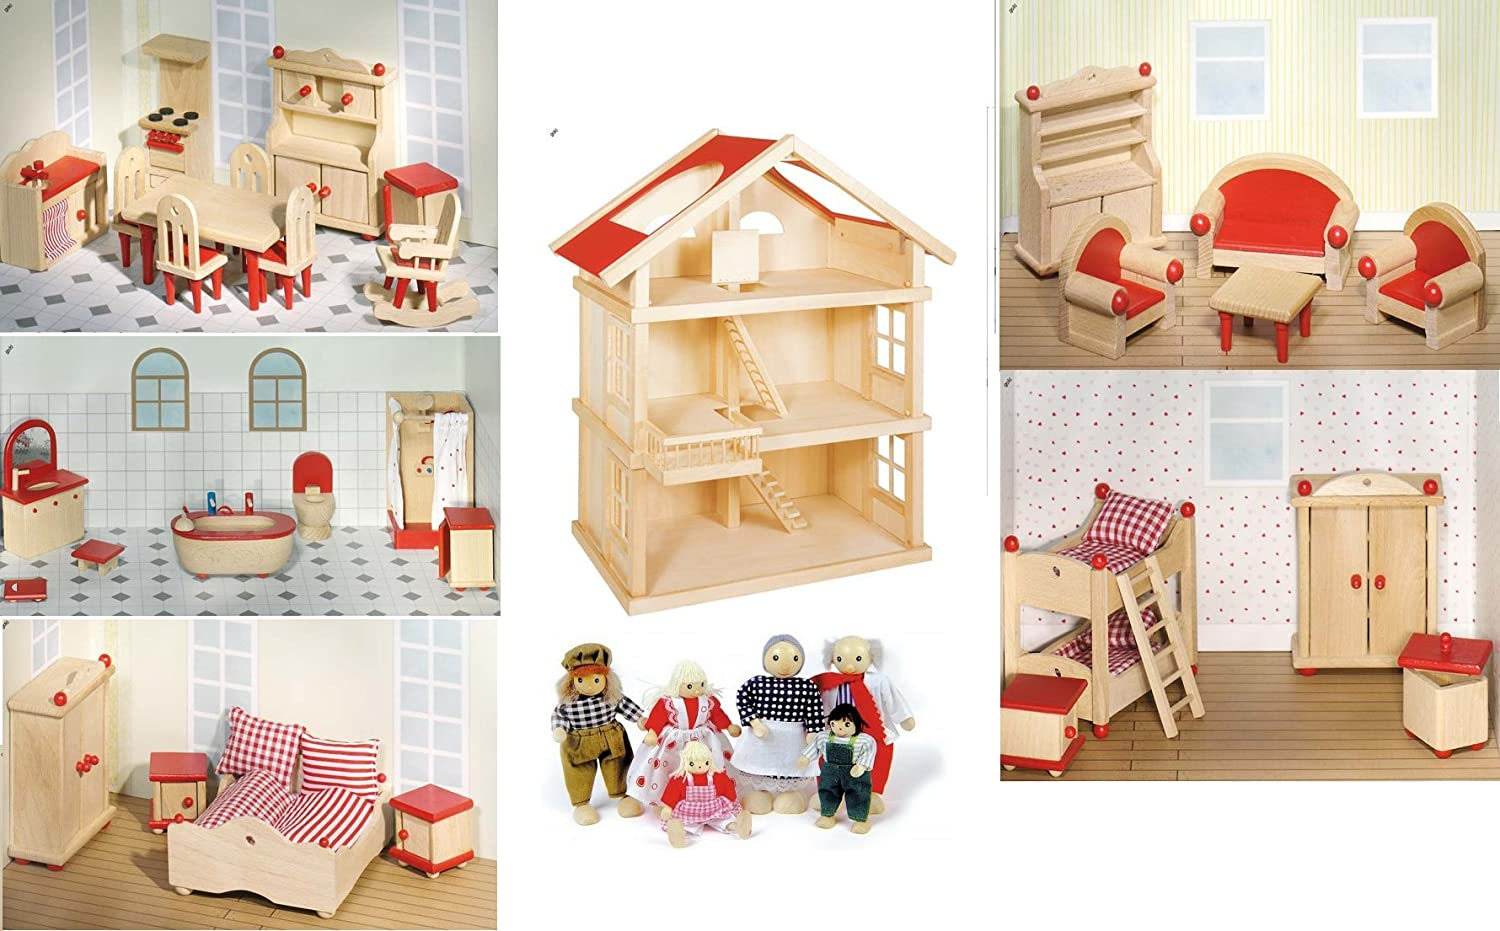 Wooden Dolls House, complete with furniture for 5 rooms